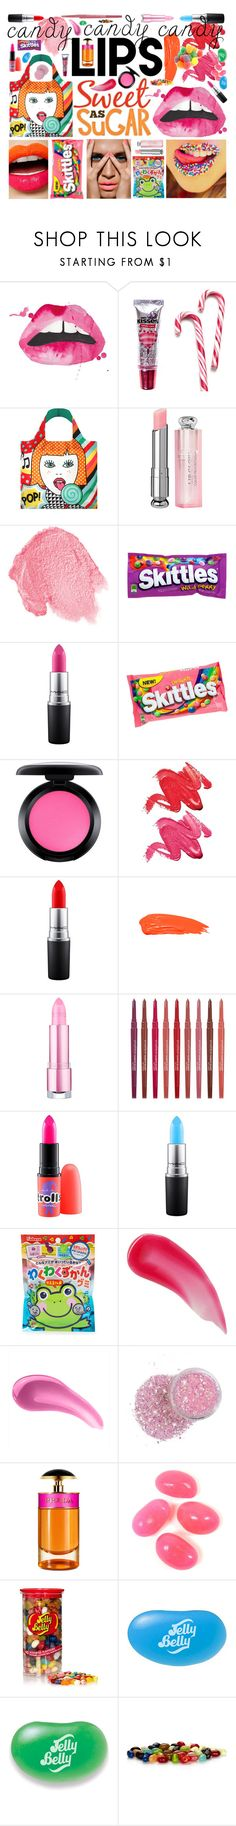 """""""Candy Kisses"""" by littlesaraha ❤ liked on Polyvore featuring beauty, Hershey's, LOQI, Christian Dior, NARS Cosmetics, MAC Cosmetics, Stila, Anastasia Beverly Hills, Smashbox and Charlotte Tilbury"""